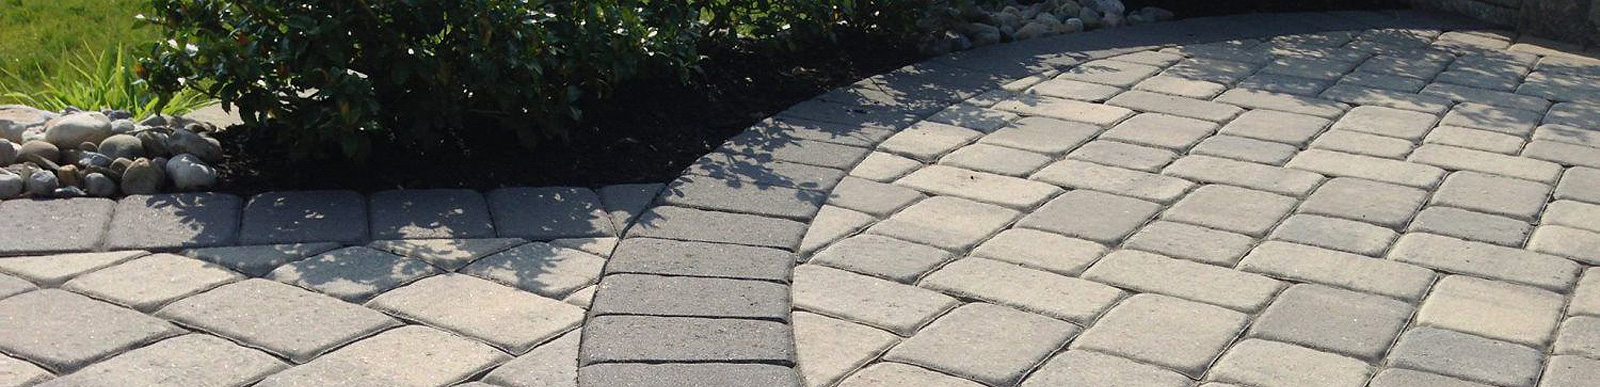 Brick by Brick Pavers and Landscaping